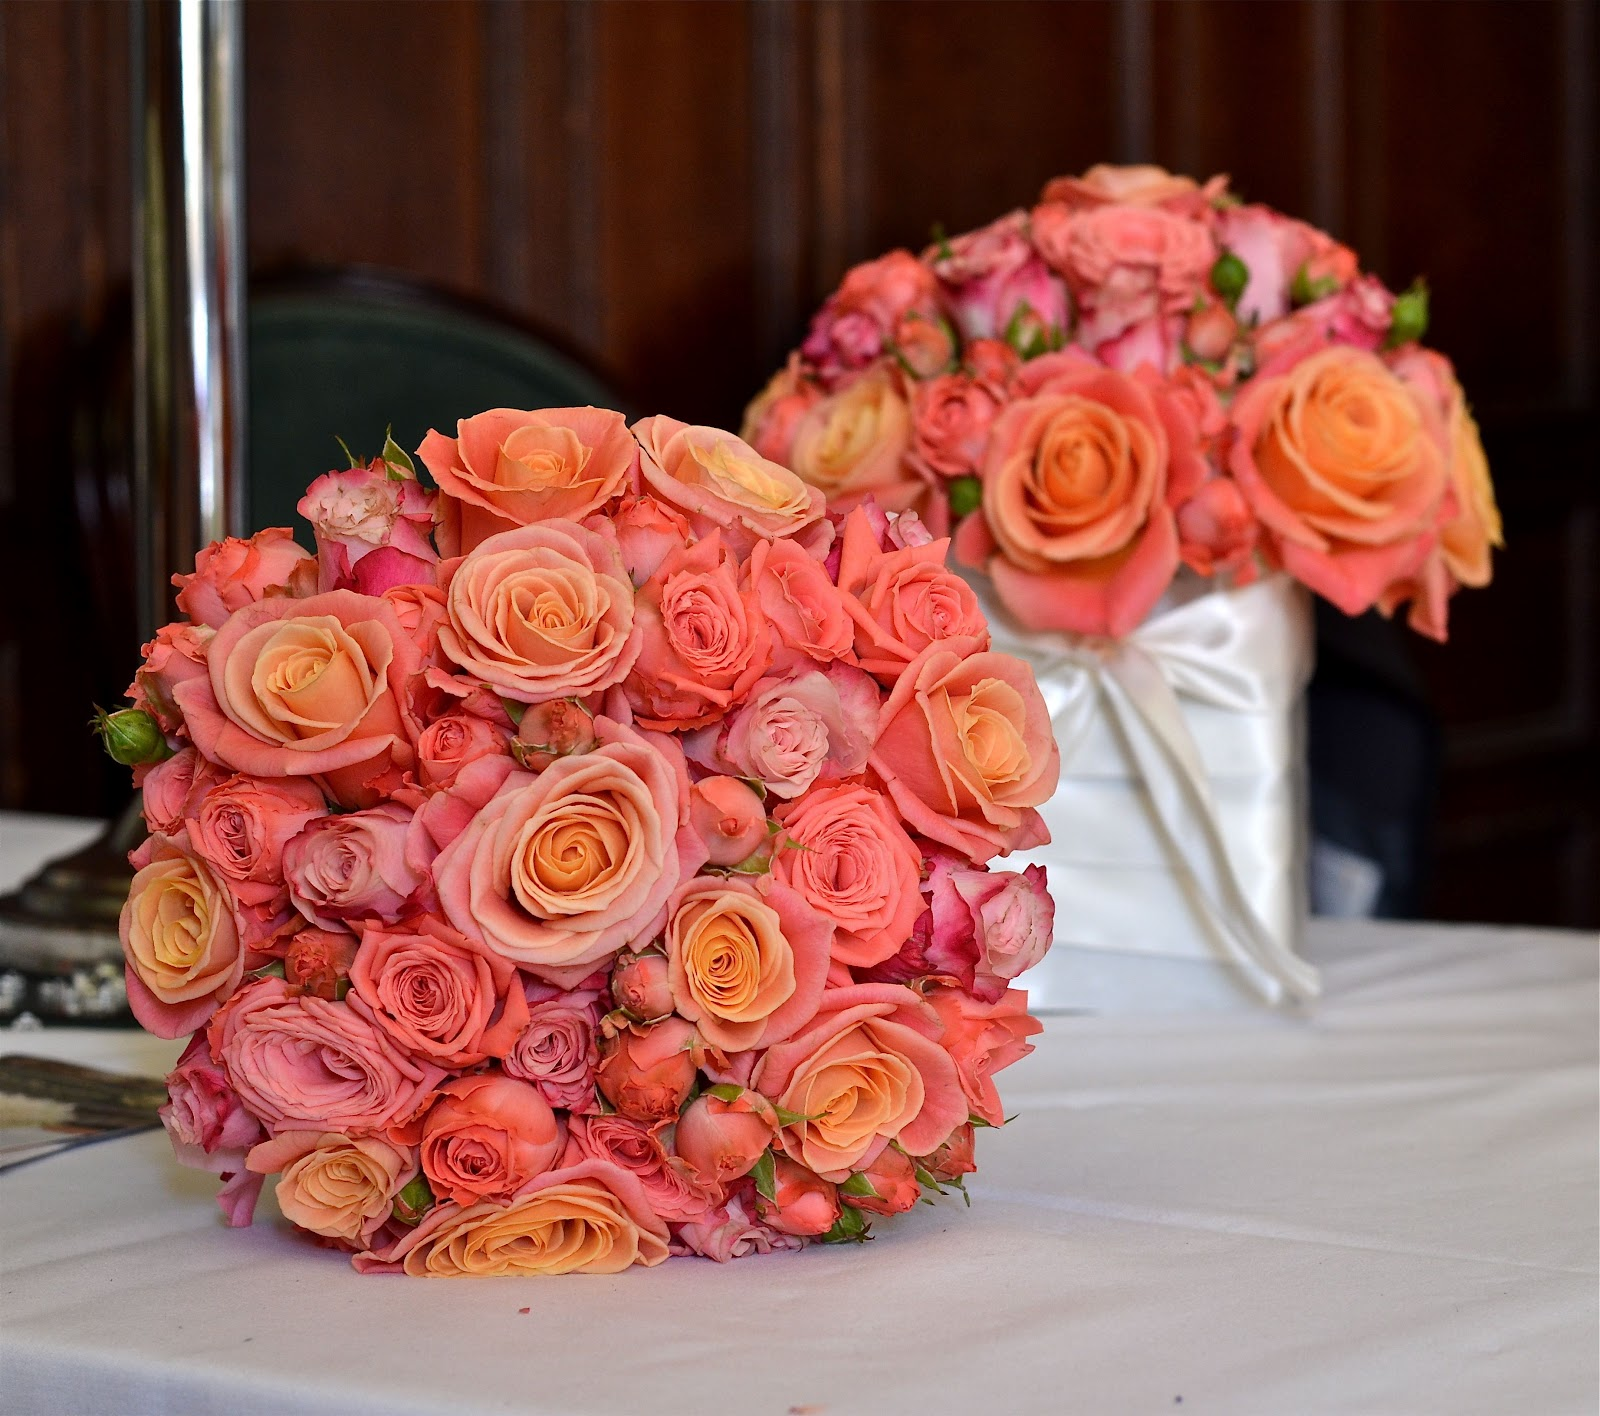 Roses Wedding Flowers: Wedding Flowers Blog: New Place Wedding Fayre